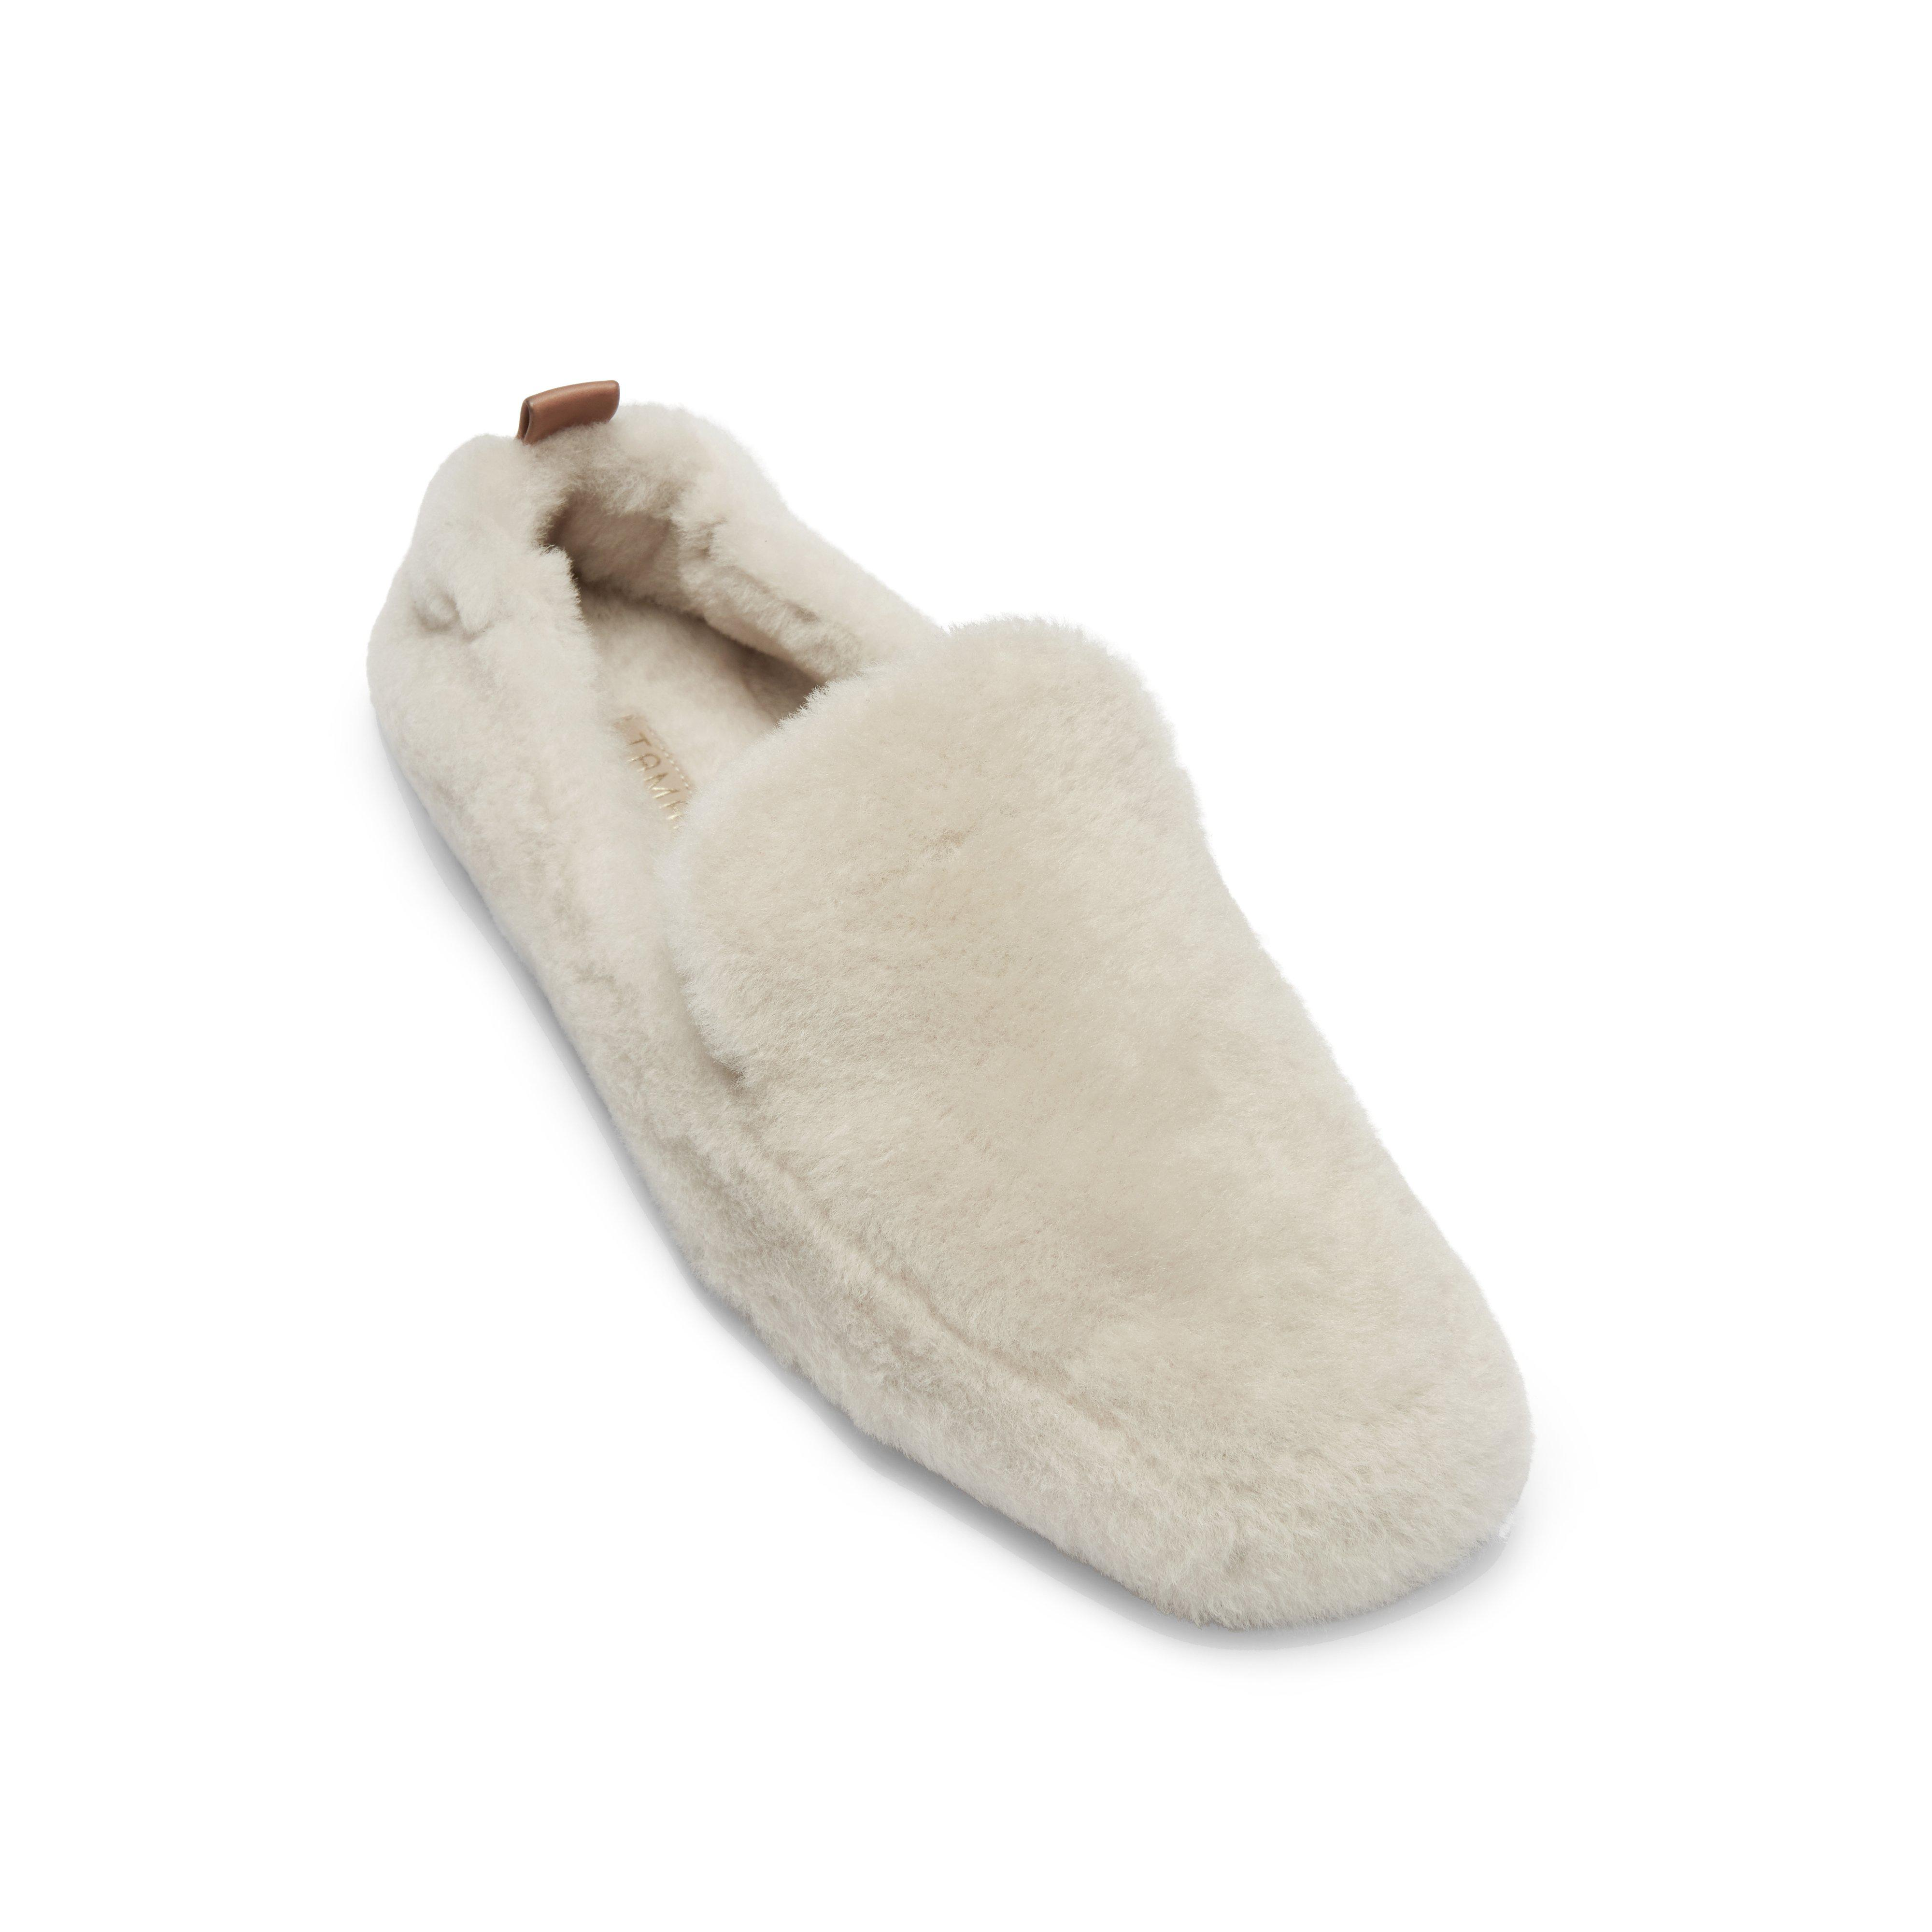 Stow - Shearling 10